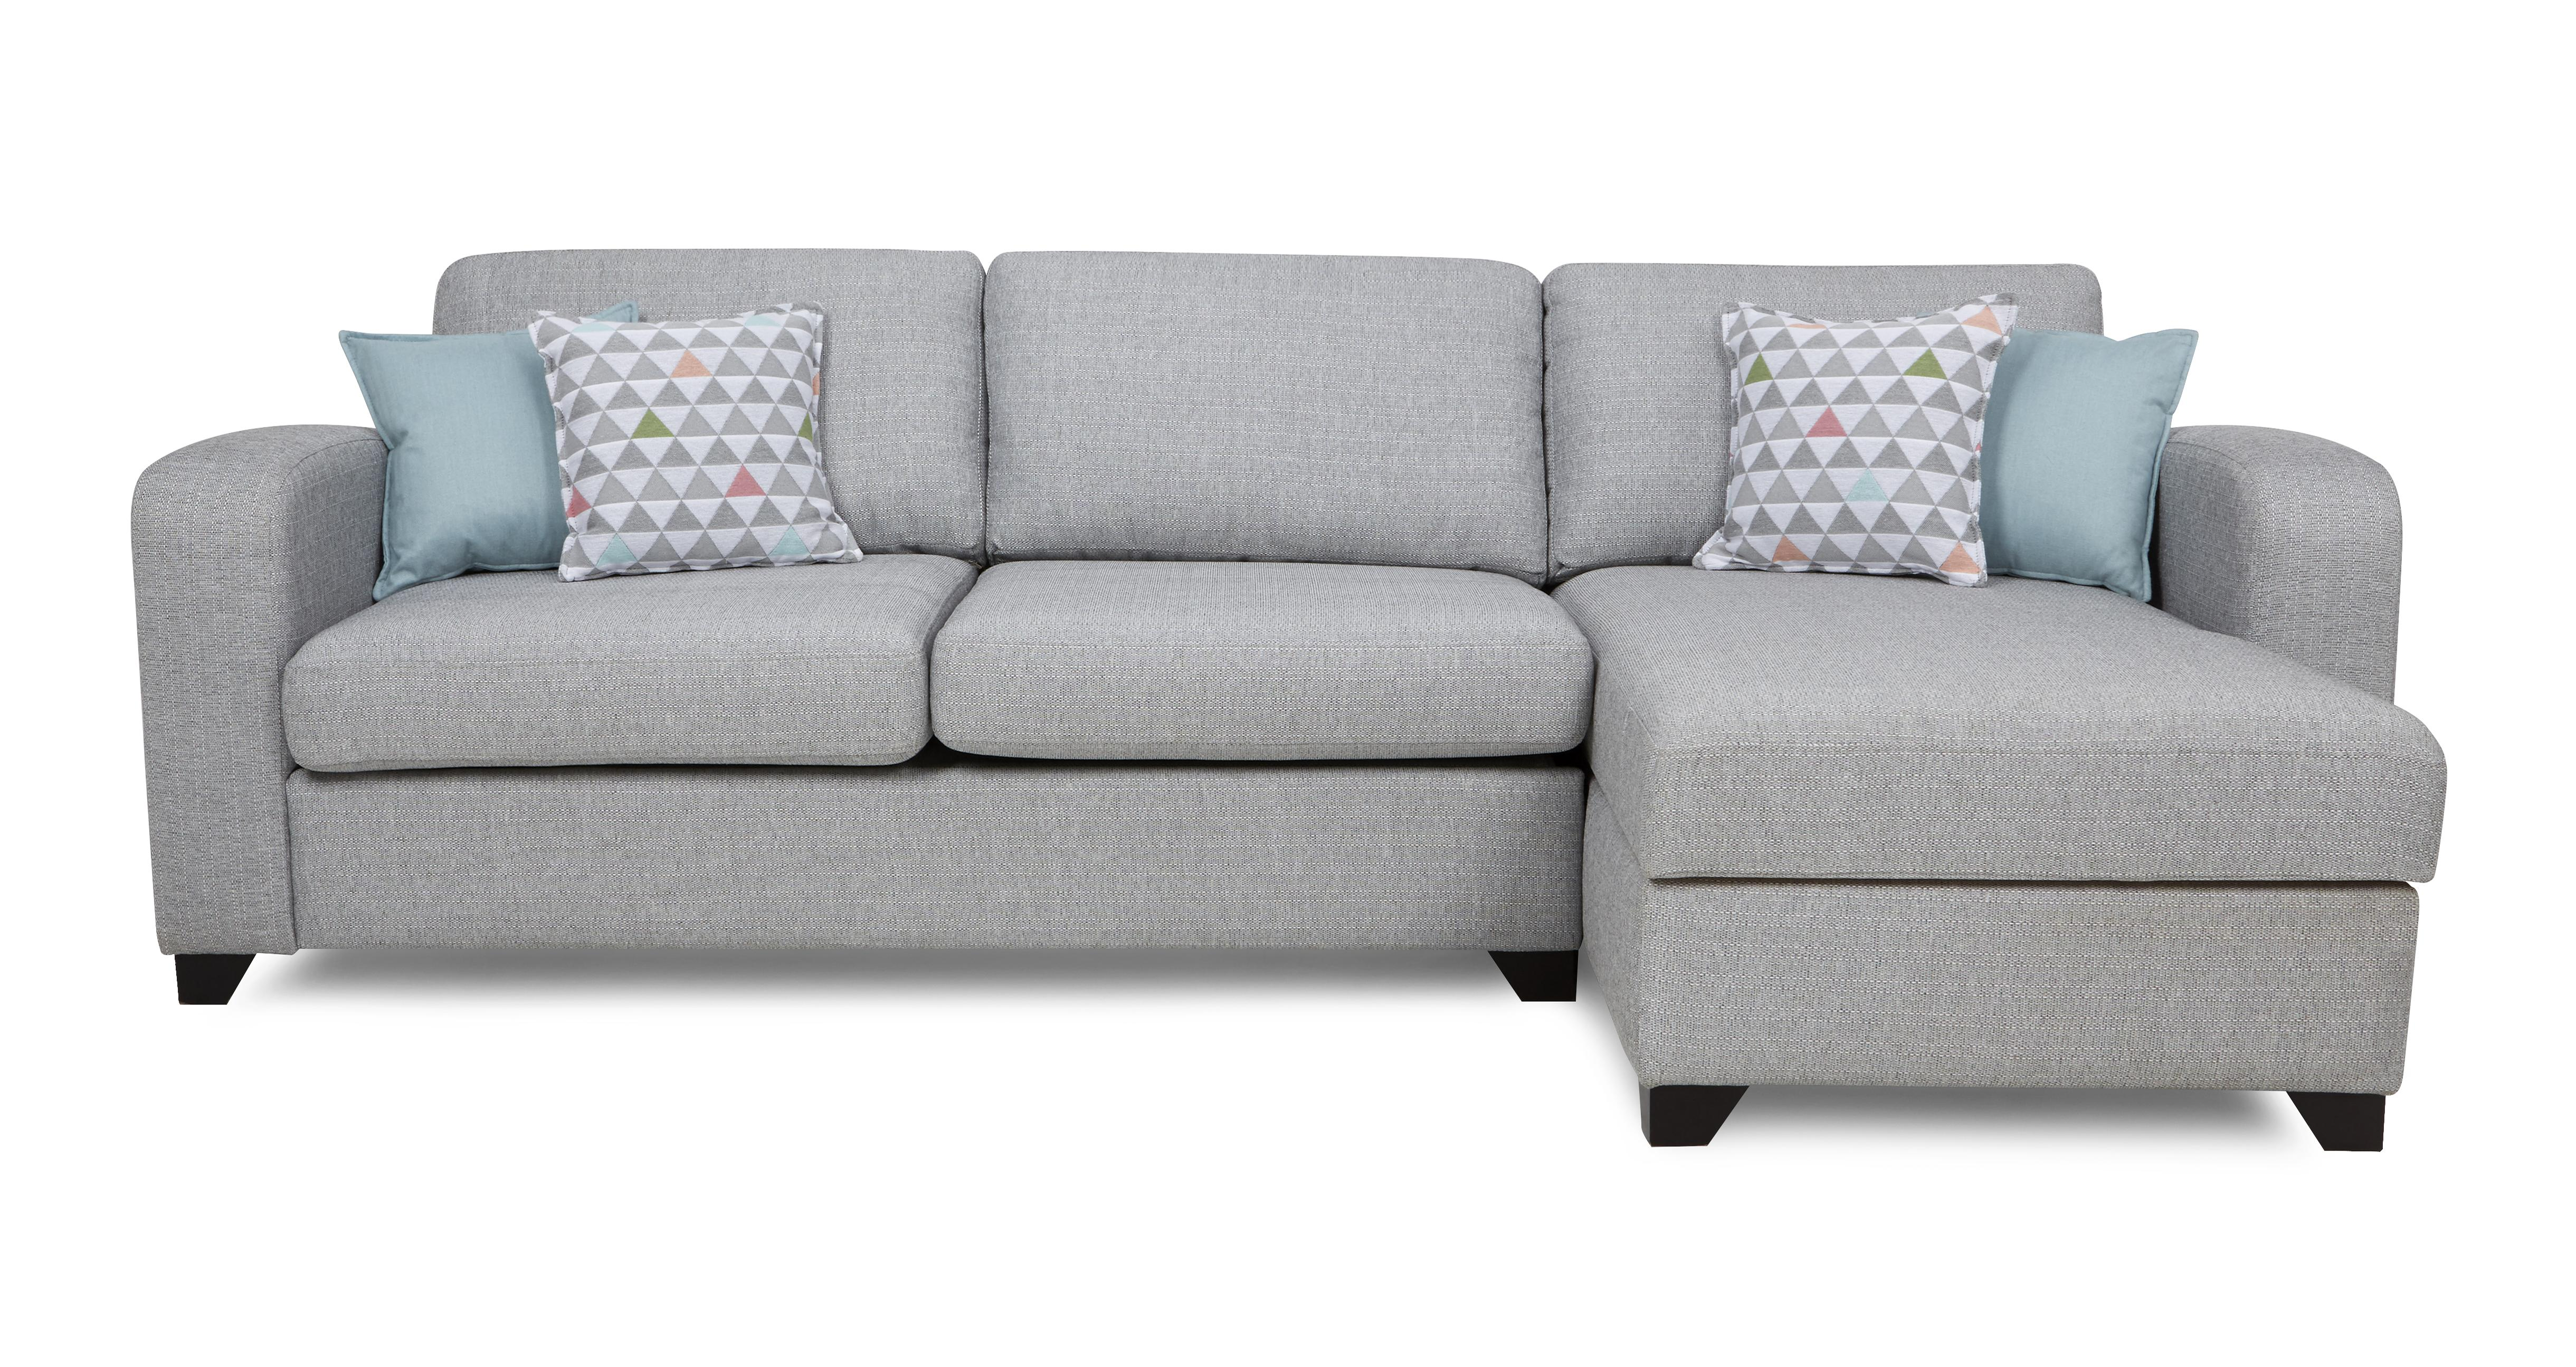 Lydia right hand facing chaise end 3 seater sofa dfs for Chaise end sofas